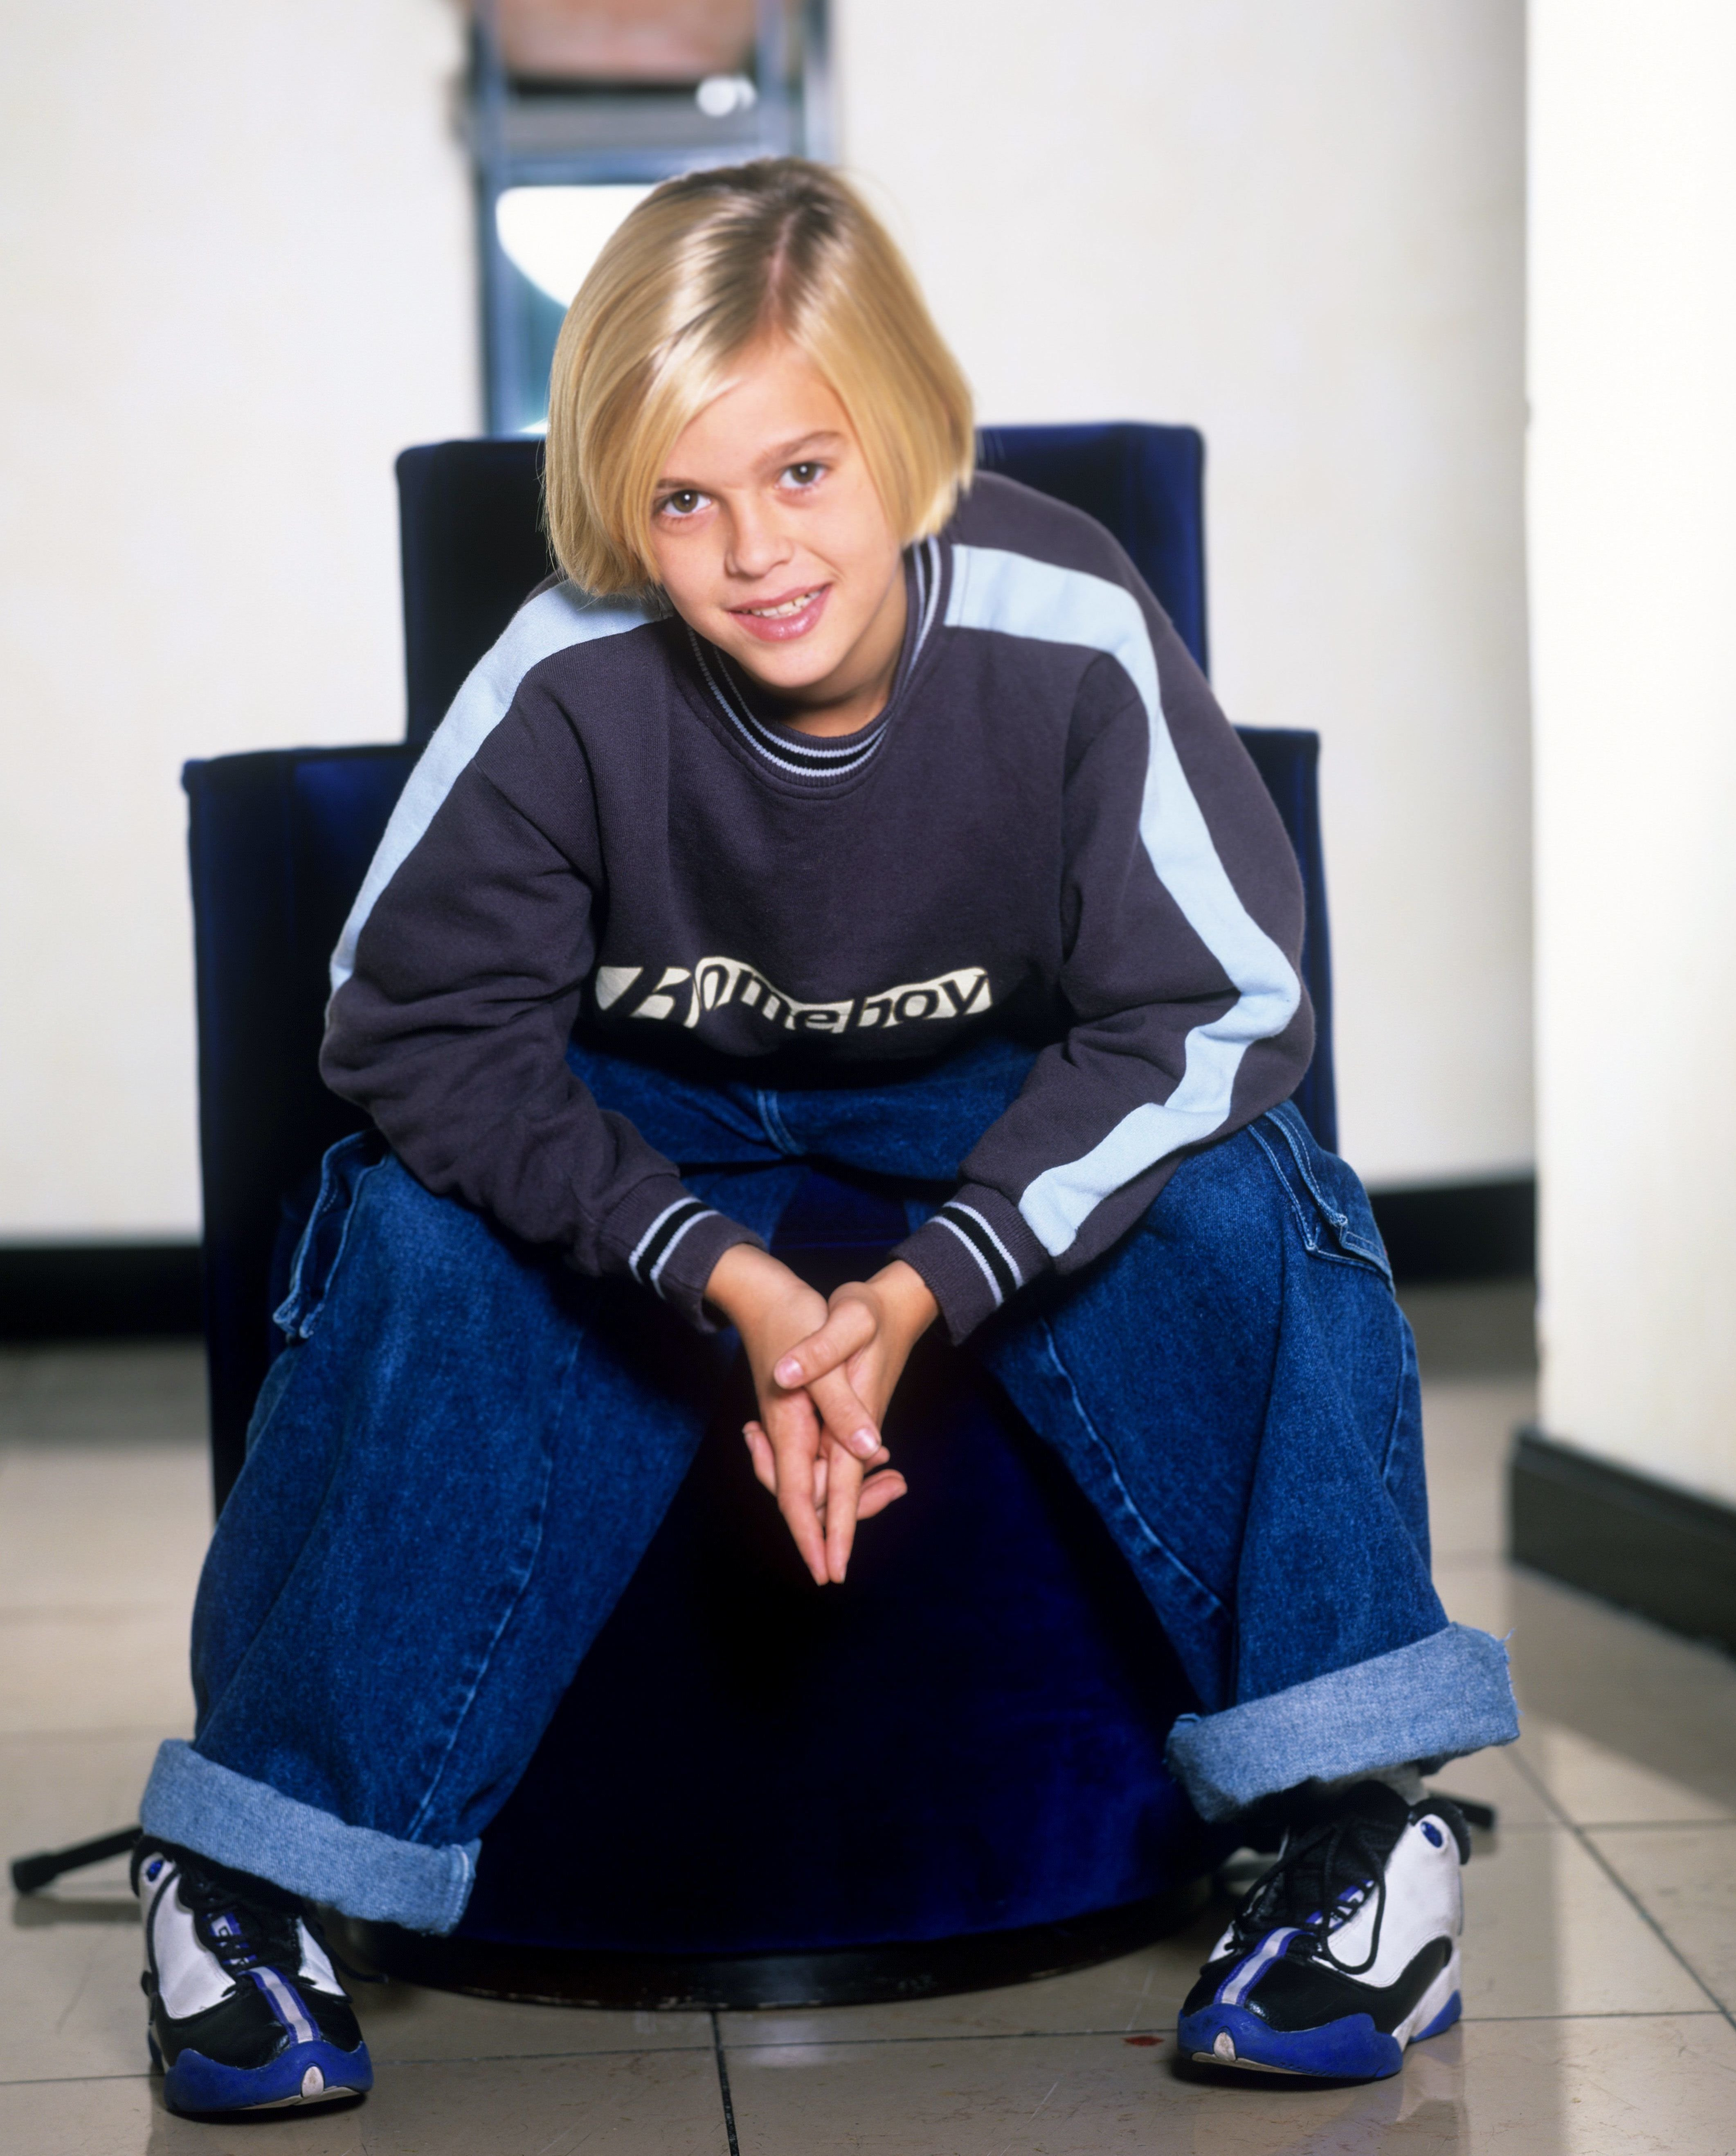 Eleven-year-old Aaron Carter at a photo shoot in 1998 in Cologne, Germany | Source: Getty Images